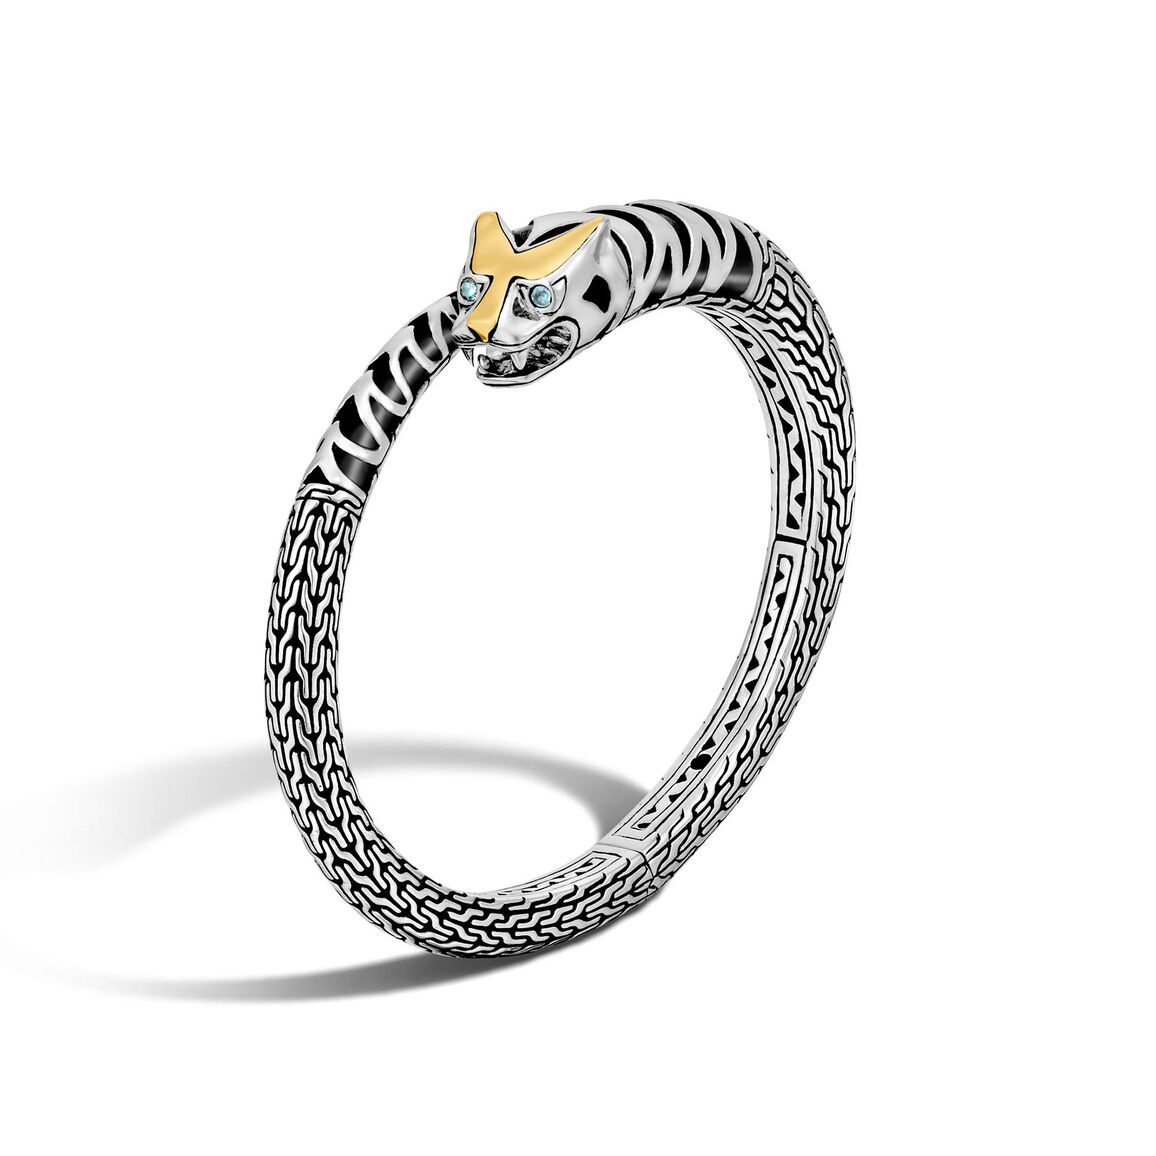 Legends Macan Kick Cuff in Silver and 18K Gold